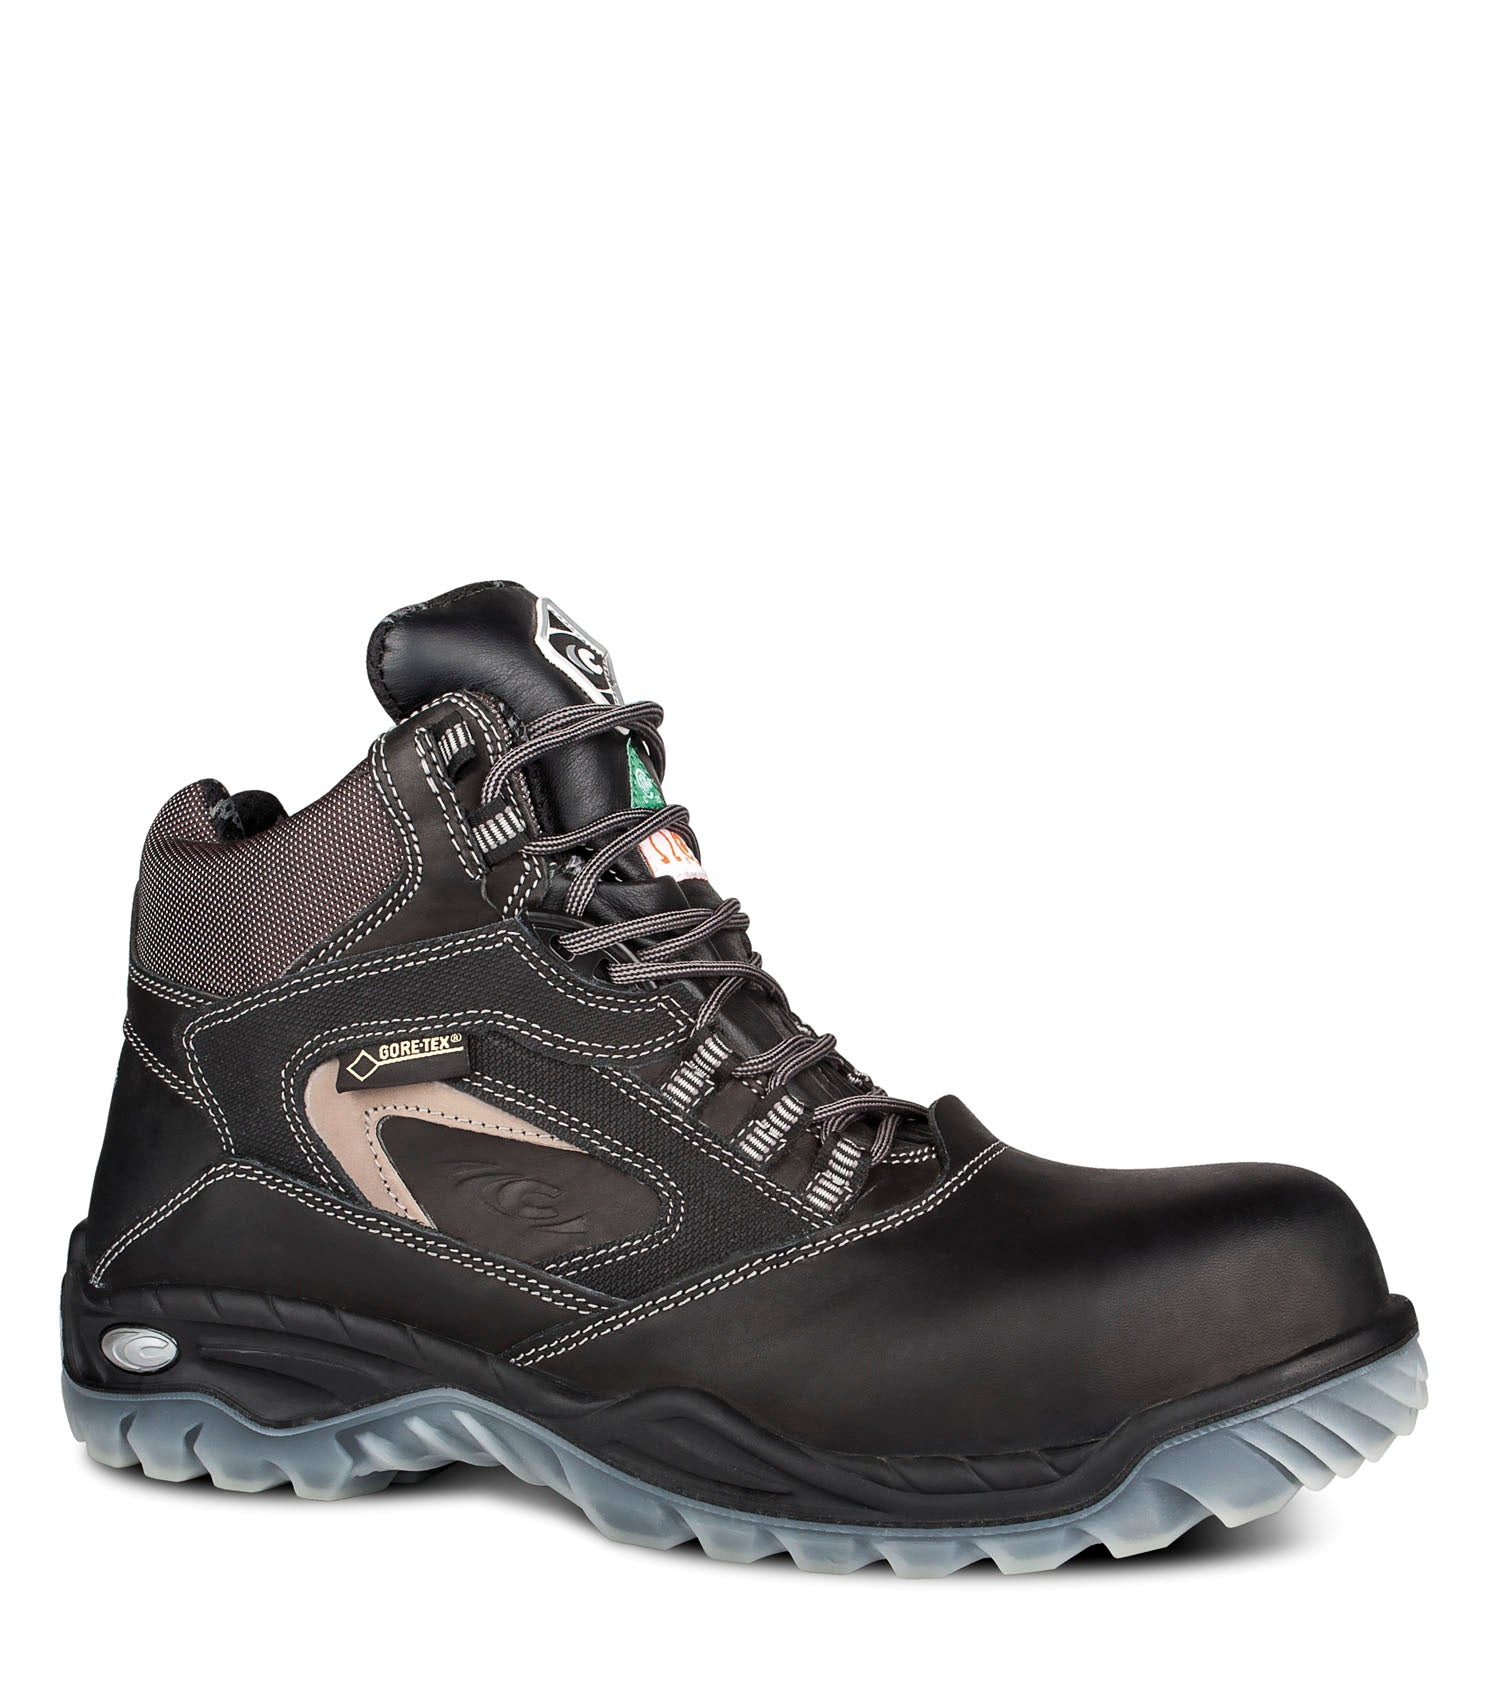 Cofra Valzer GORE-TEX Safety Boots Composite Toe Caps /& Midsole Metal Free N